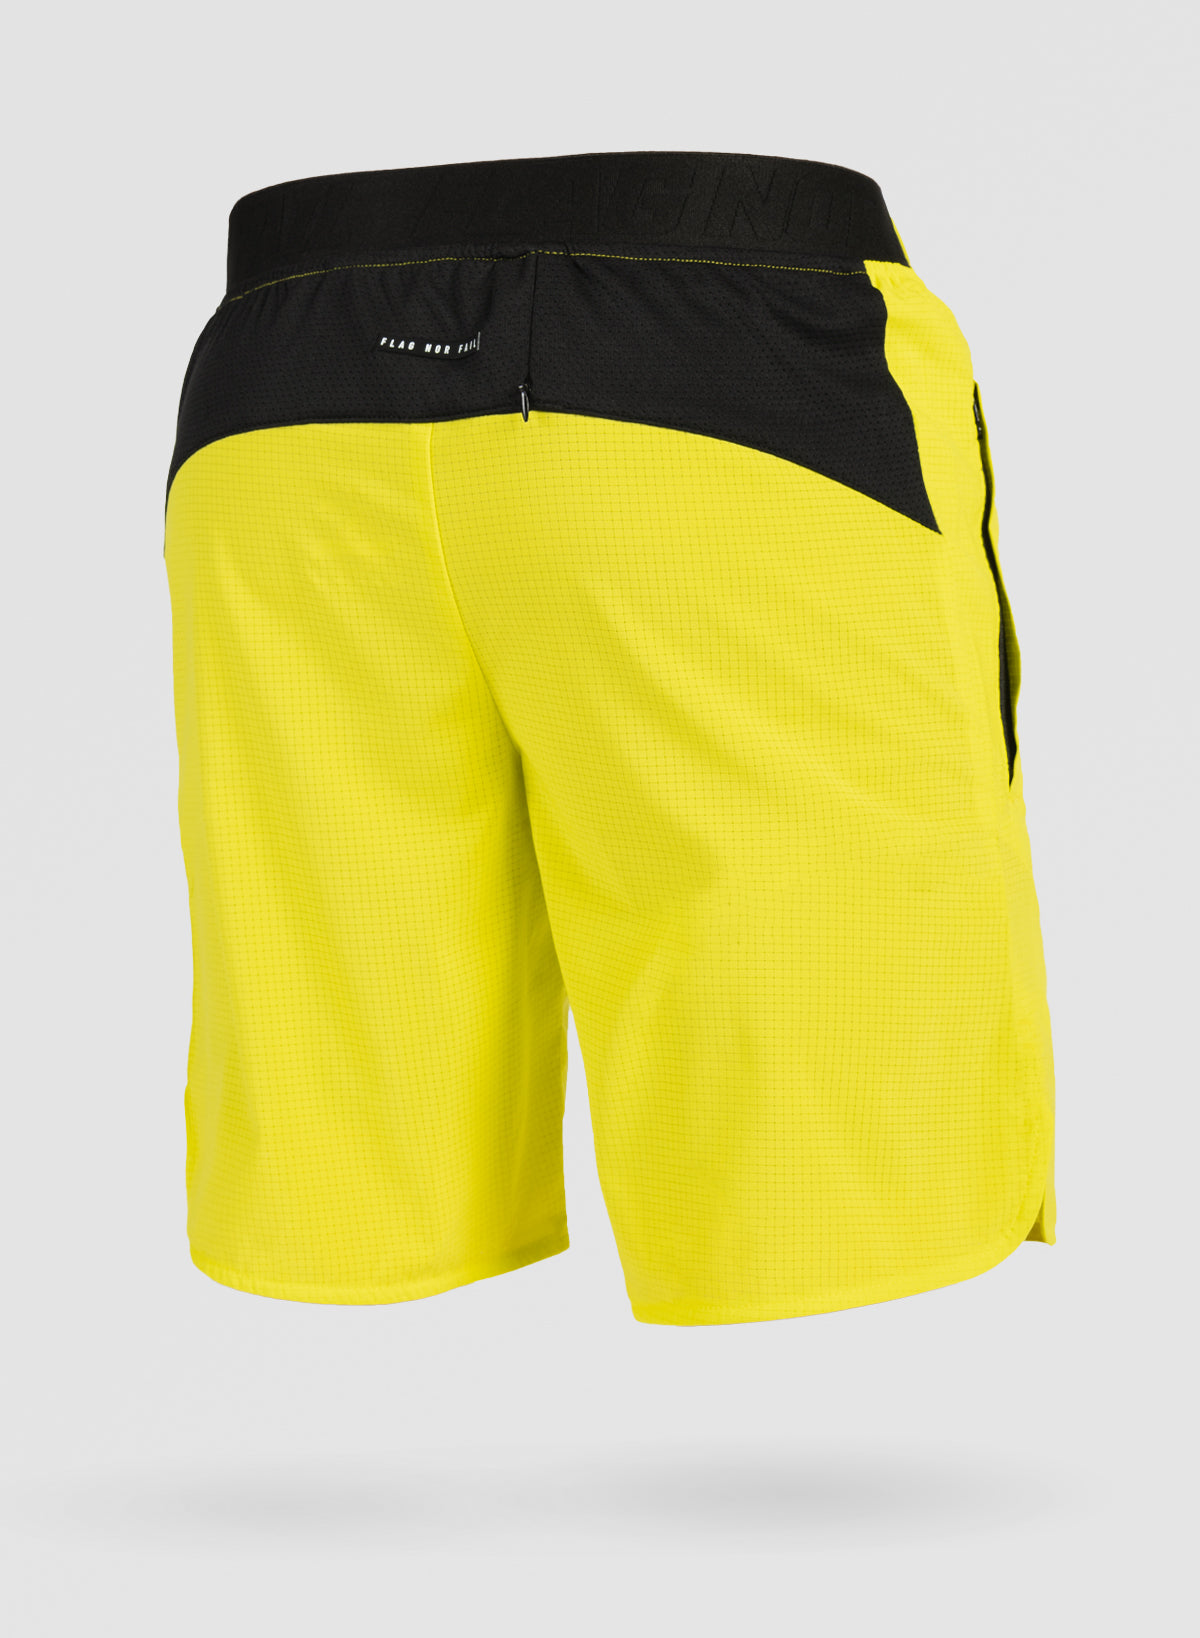 MEN'S TEK TRAINING SHORTS - NEON